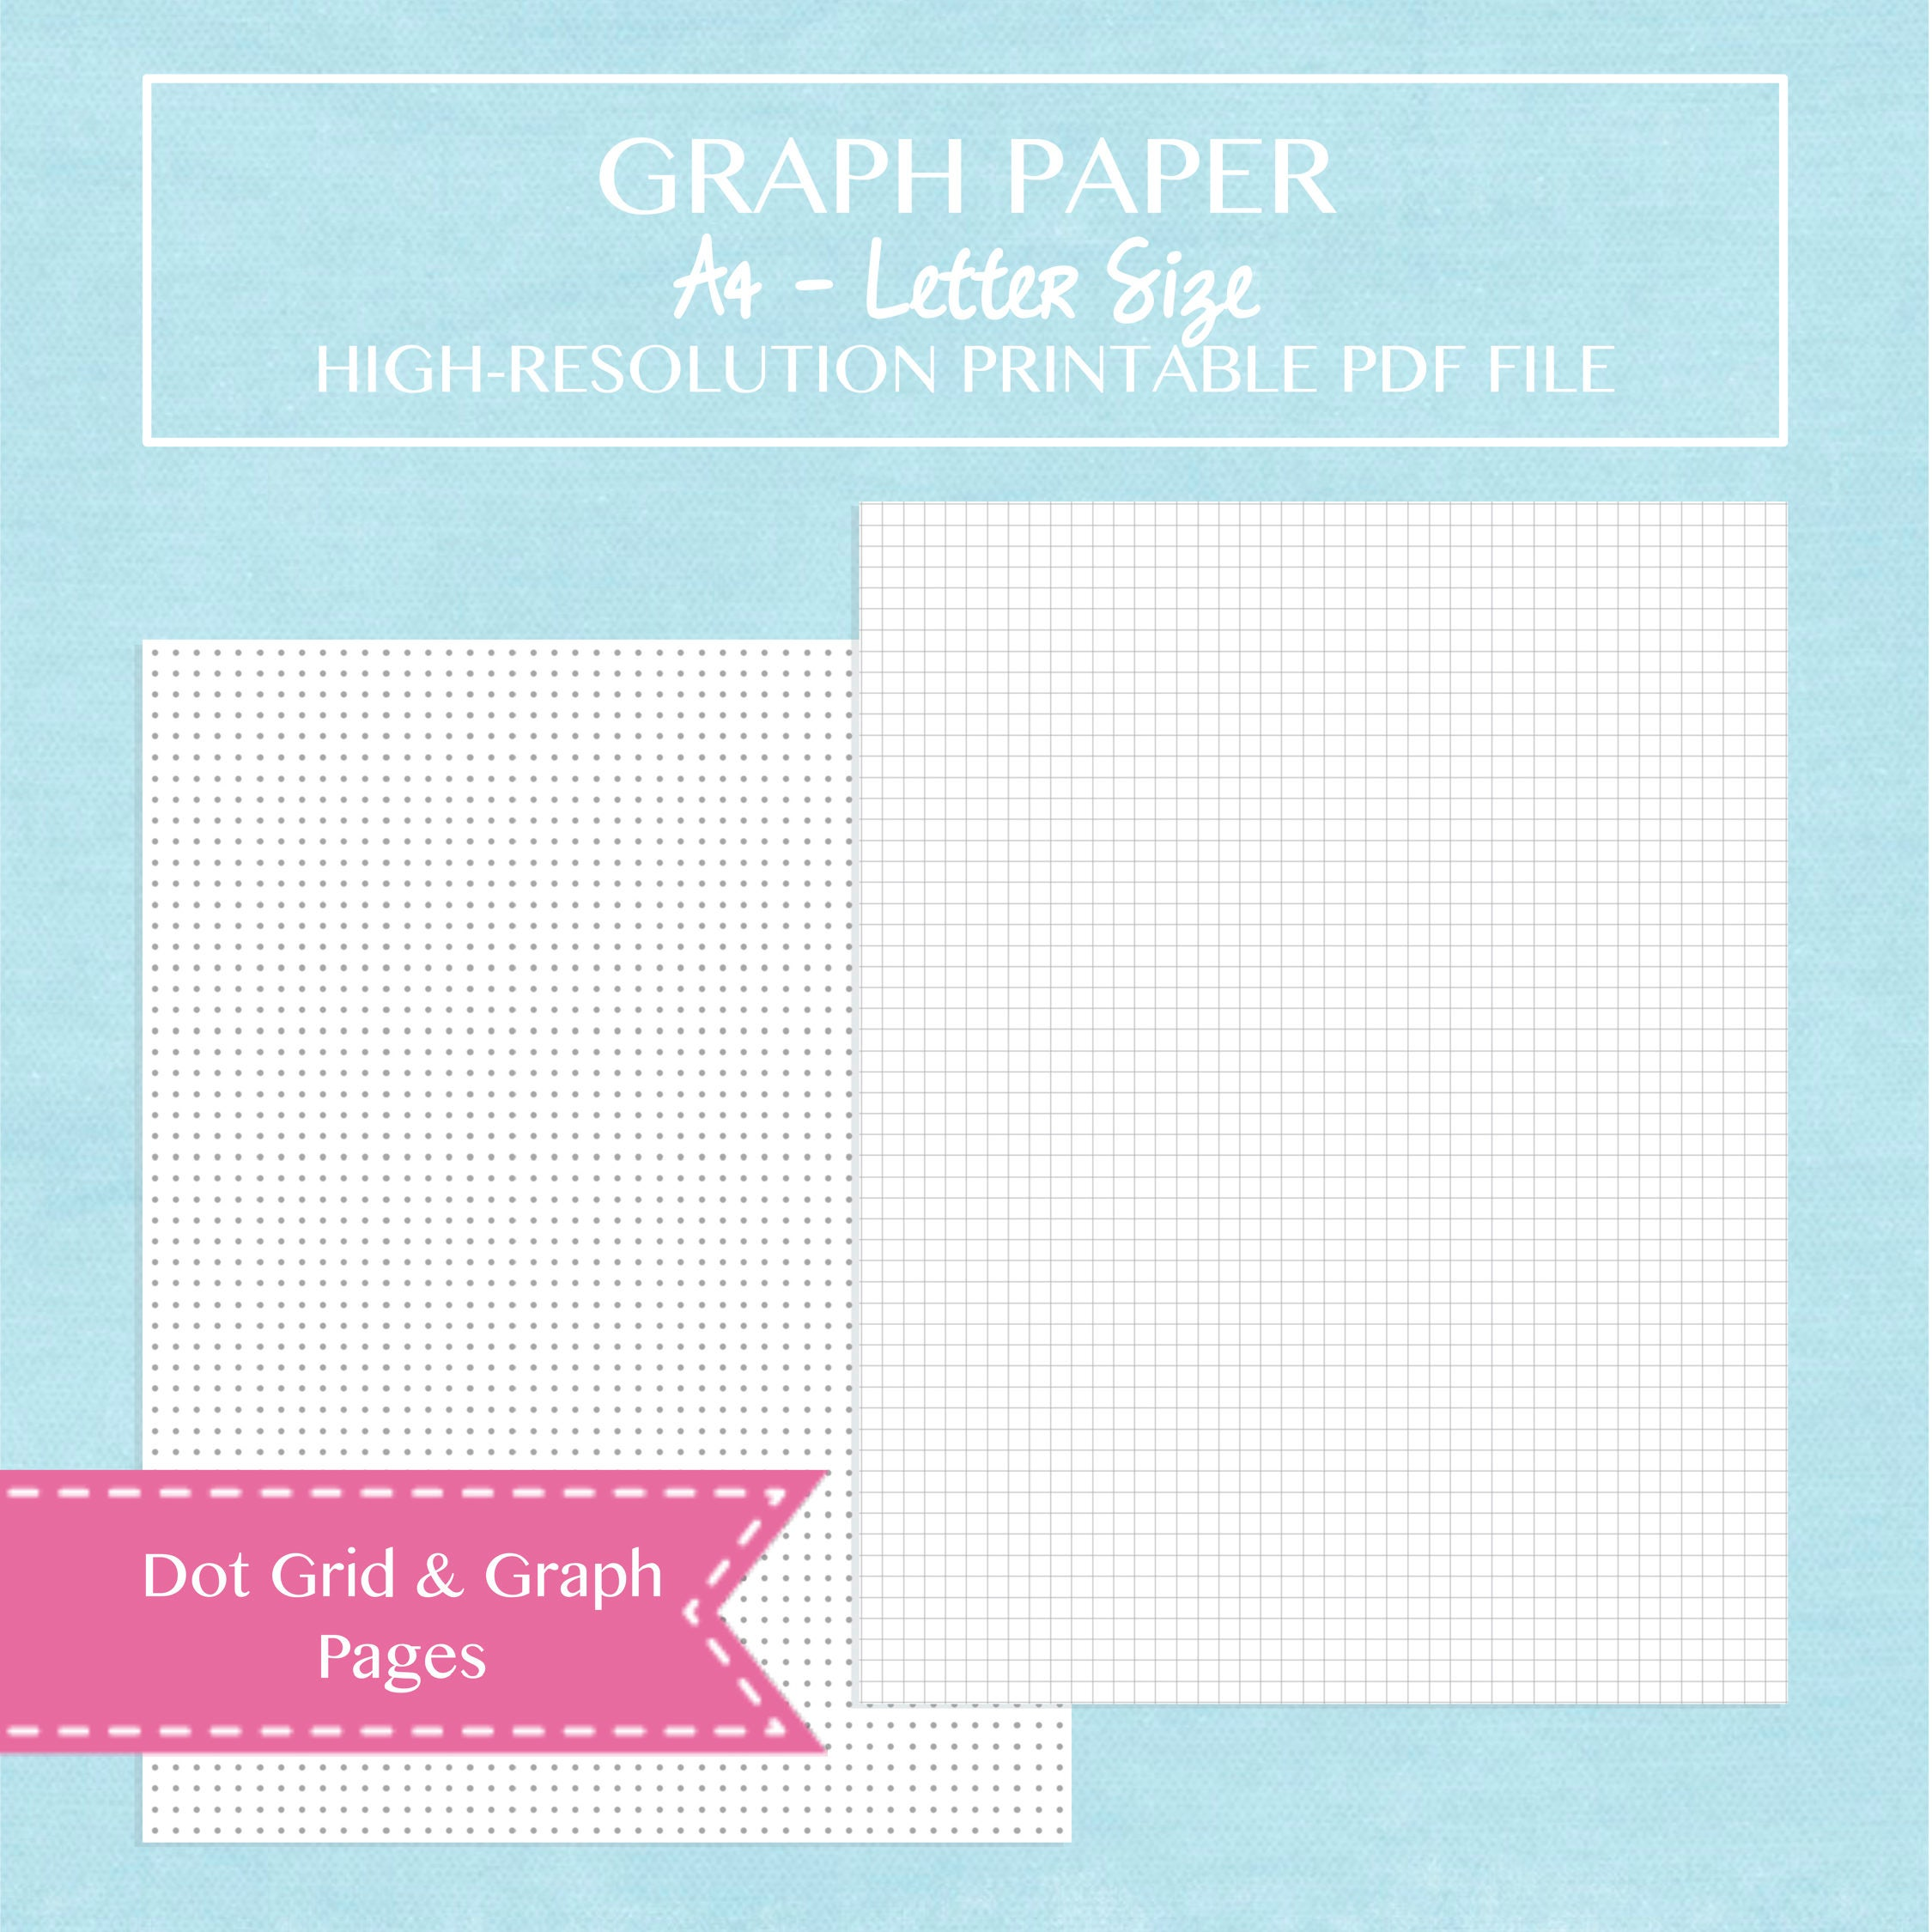 a4 letter size graph paper and dot grid paper pack printable